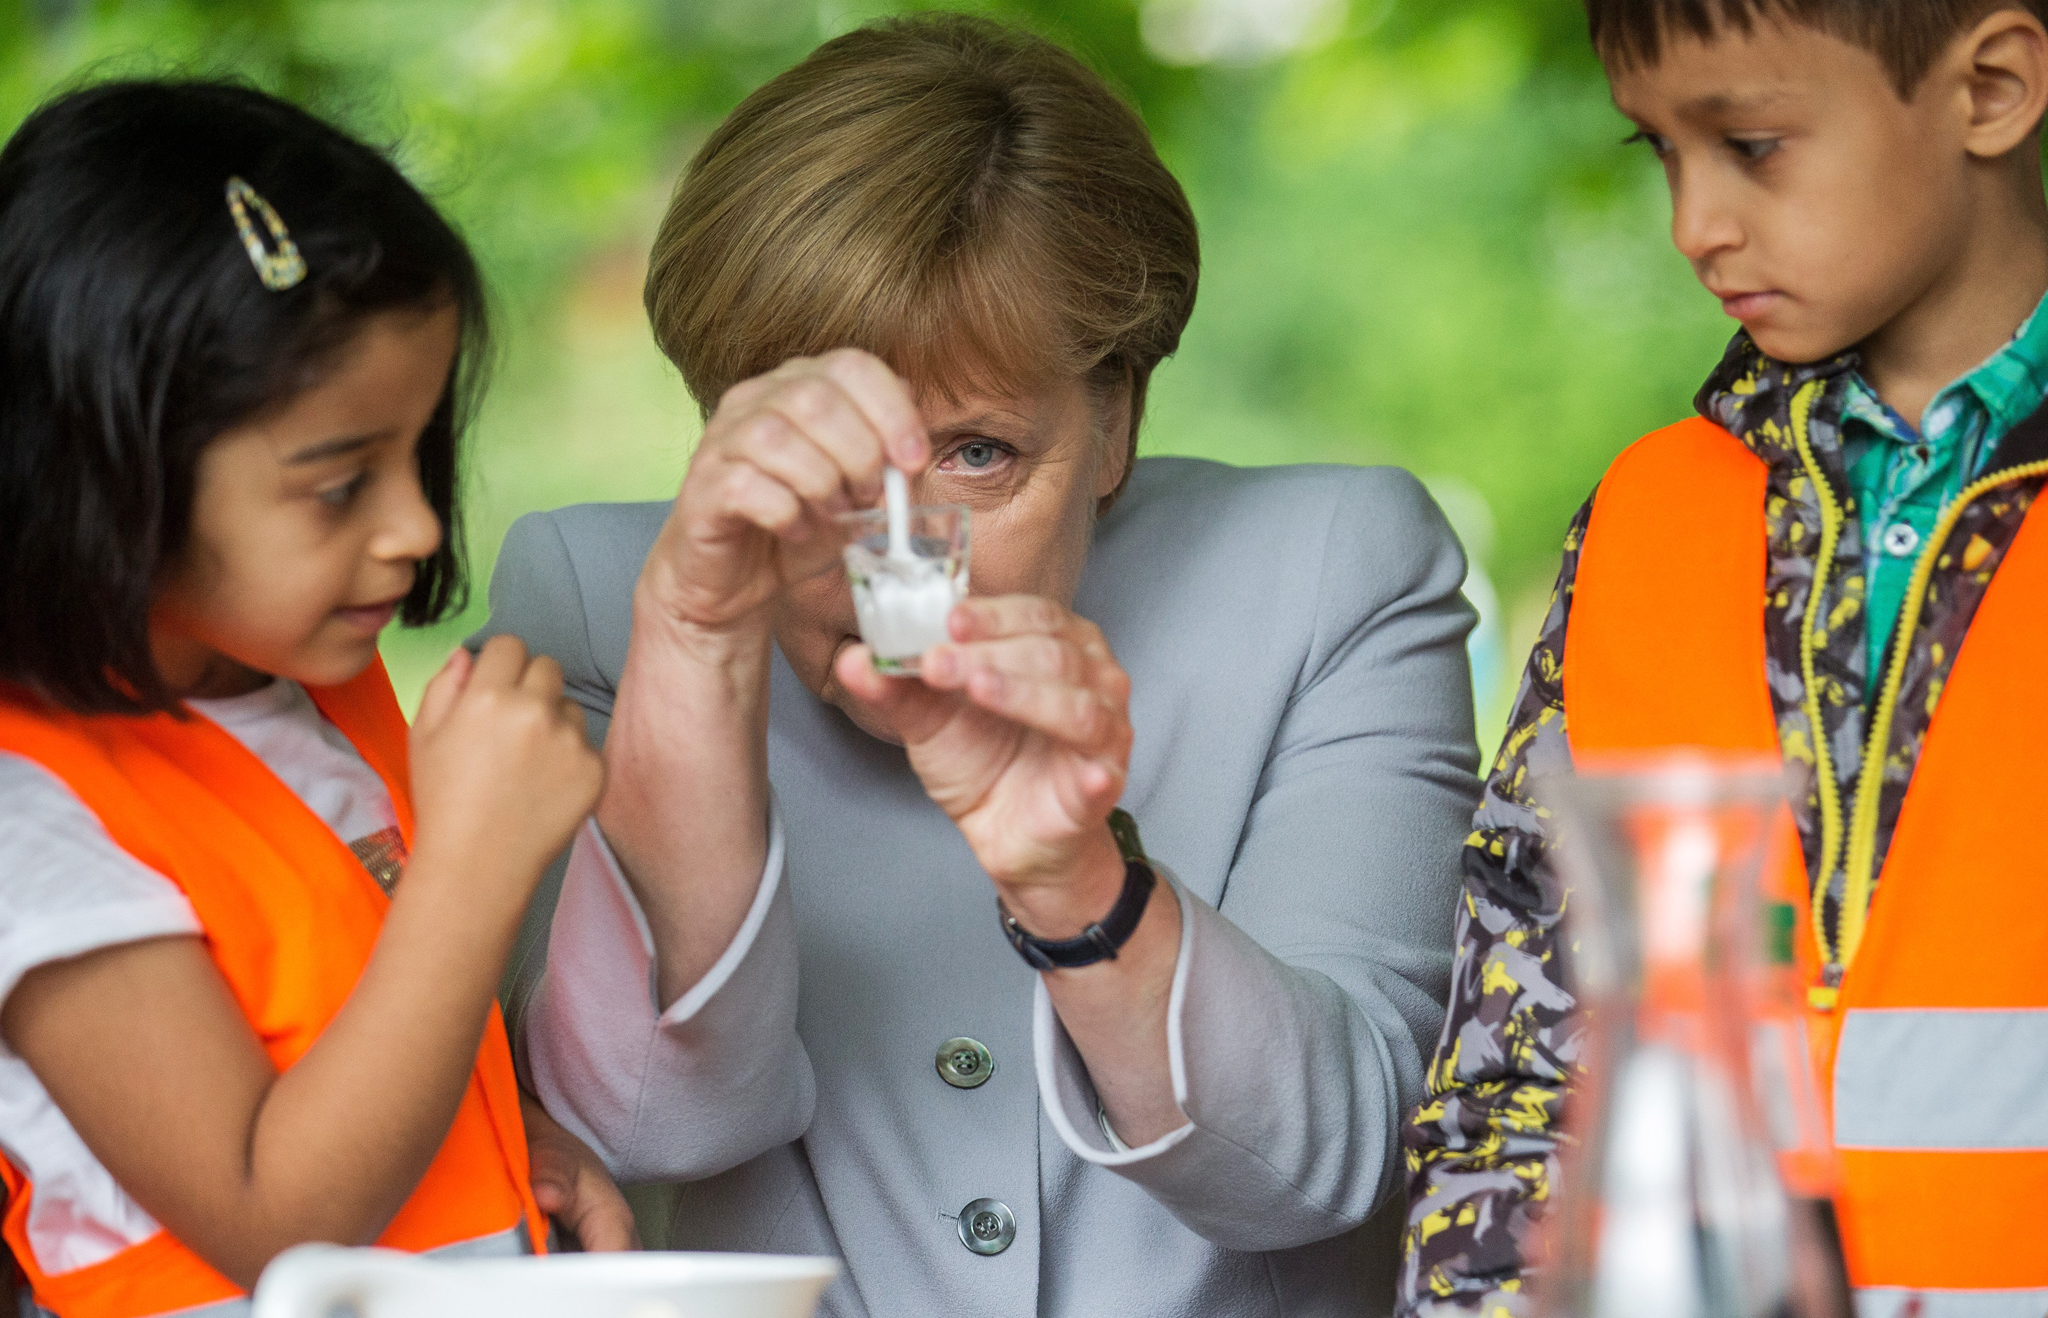 German Chancellor Angela Merkel watches how lemonade is mixed as part of a children's experiment during her visit at a kindergarten in Berlin, Germany, Tuesday, June 21, 2016